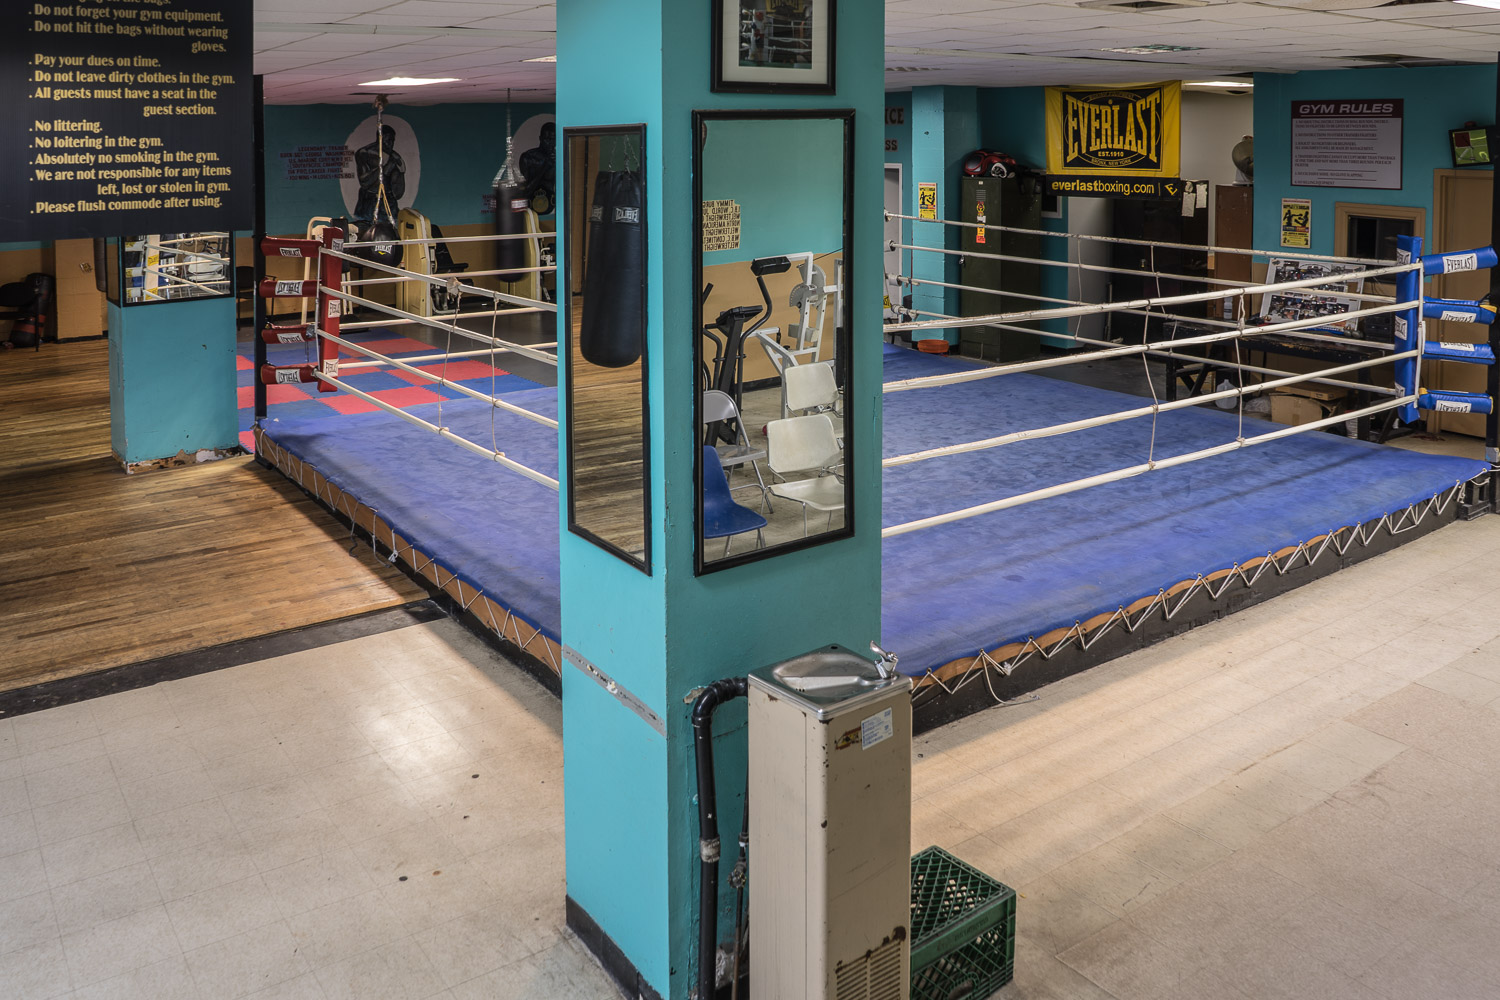 The gym has a full size ring, boxing bags and some weights equipment.